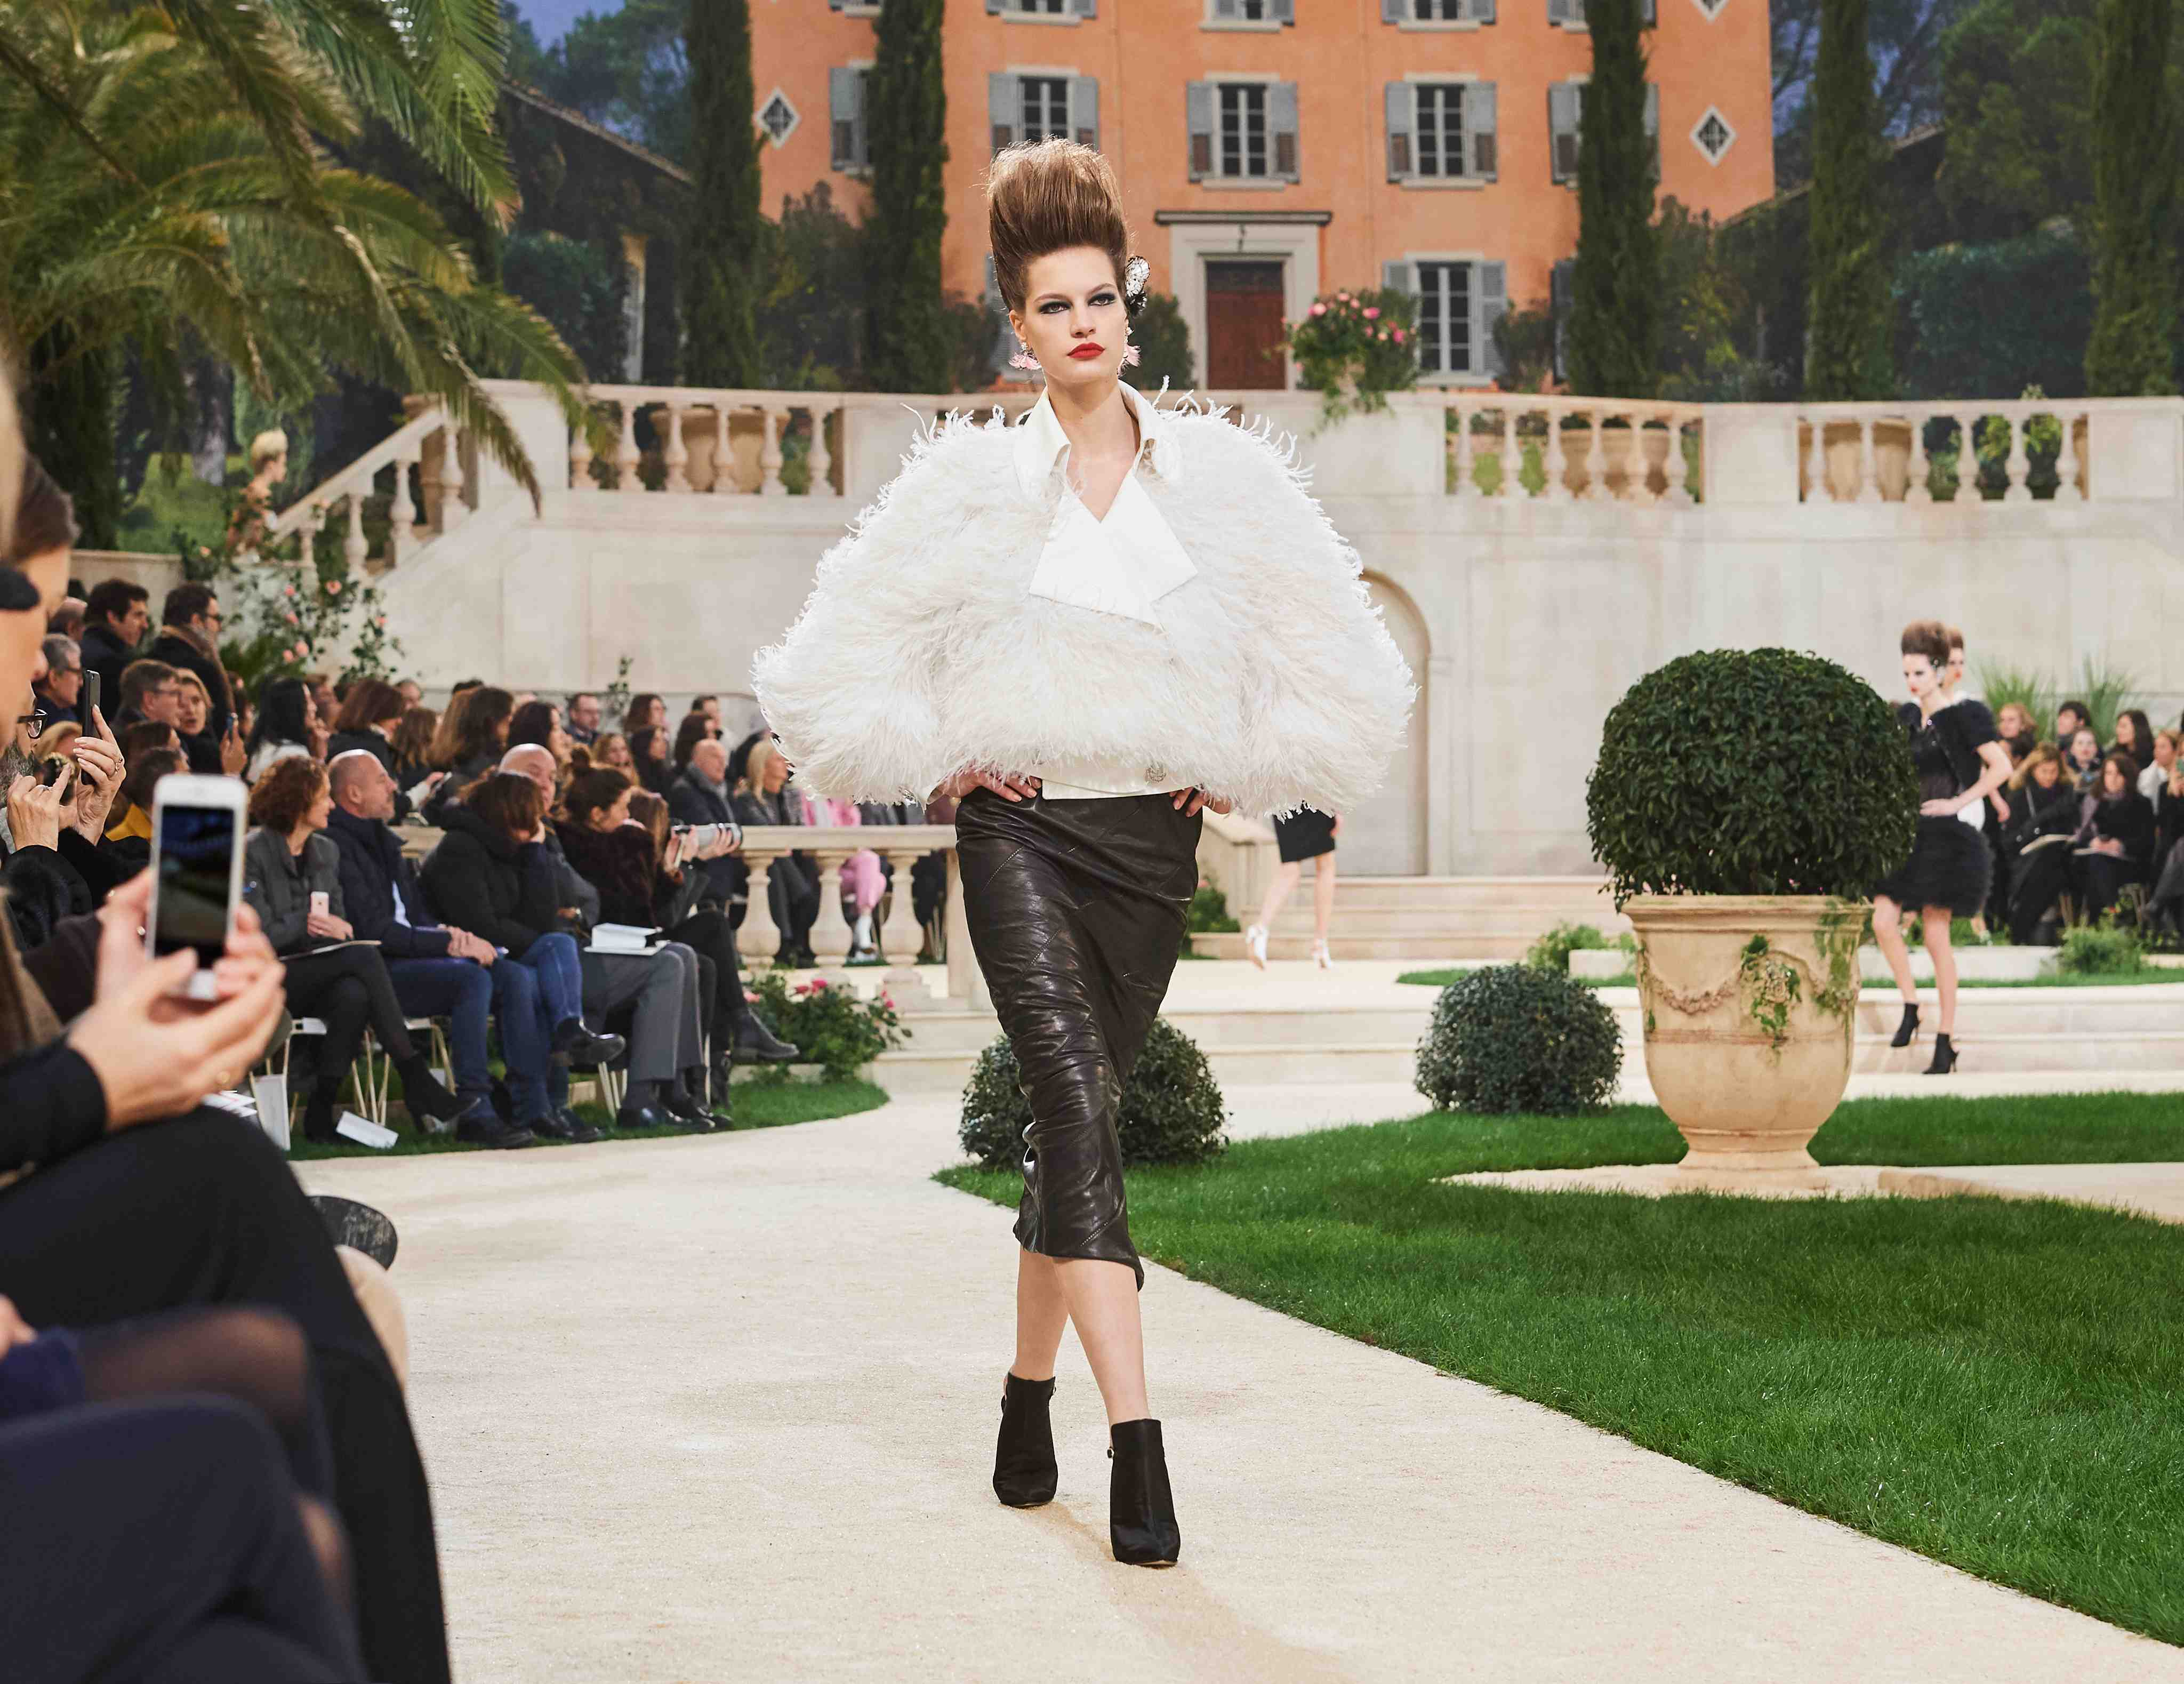 Chanel SS19 Haute Couture black leather skirt and feathered white jacket